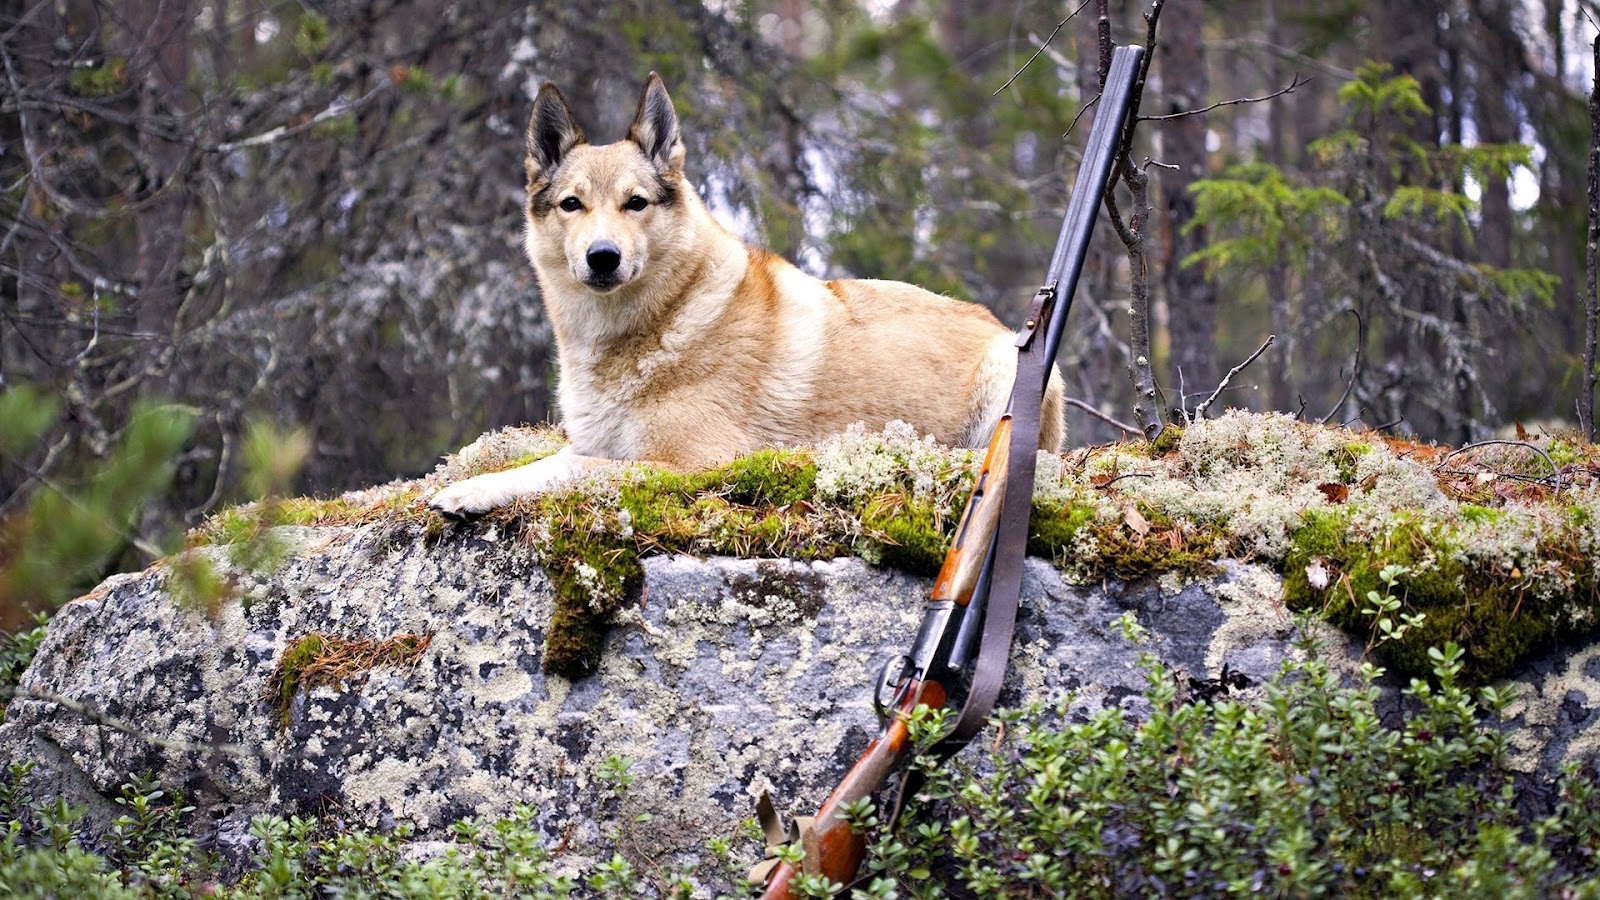 http://2.bp.blogspot.com/-s4ry8JjUoPs/T-hh1wodZaI/AAAAAAAACTE/Q6BiDnvRlPY/s1600/Dog_and_Hunting_Shotgun_HD_Wallpaper.jpg